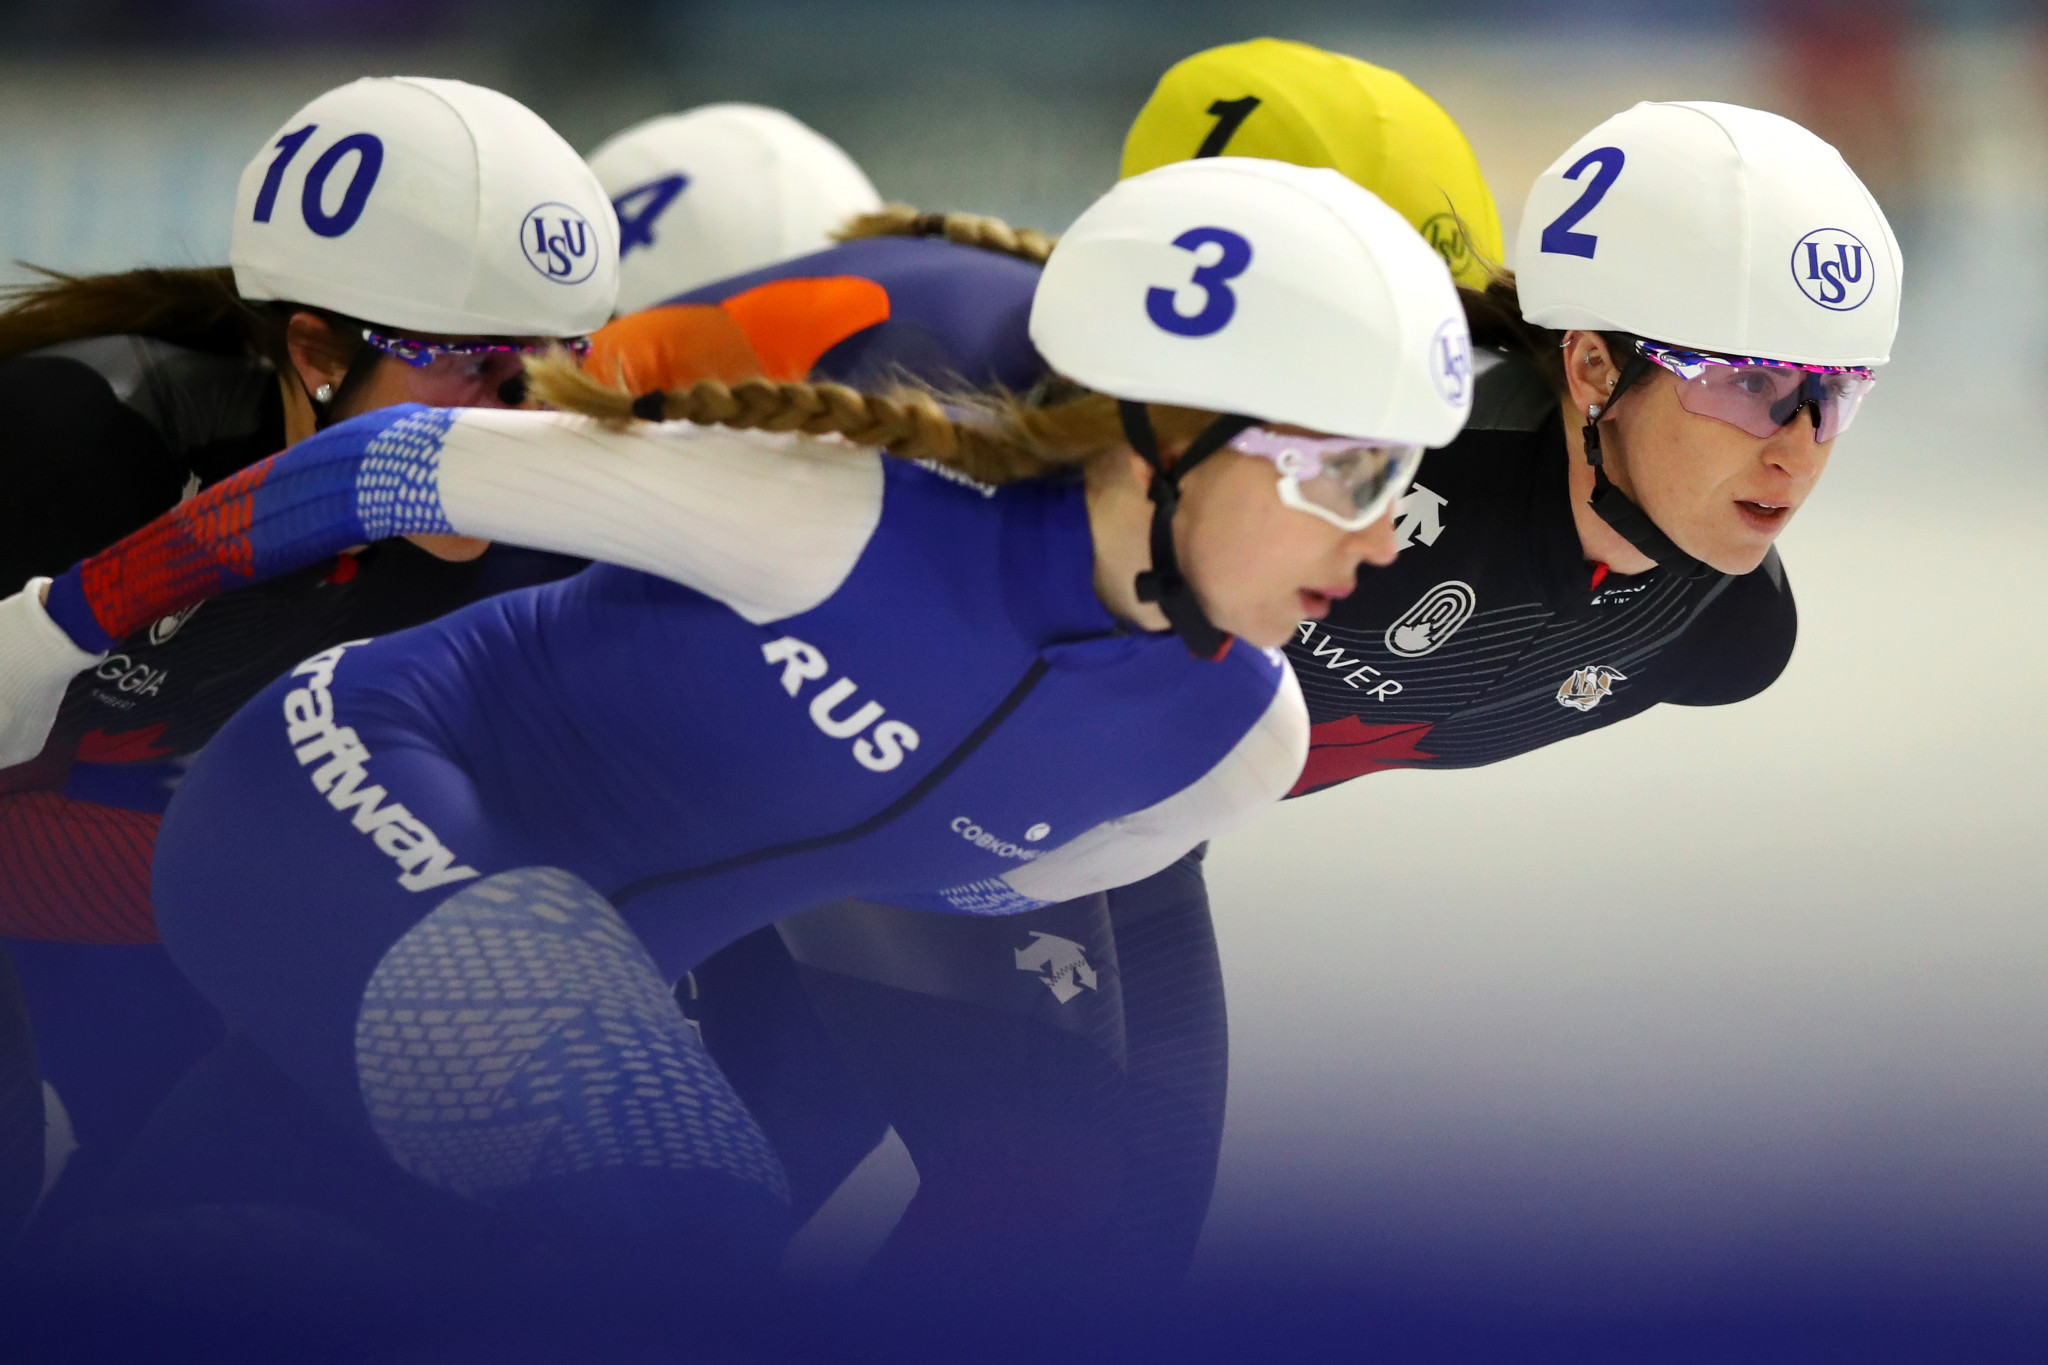 Fourteen titles available at ISU World Speed Skating Championships in Heerenveen